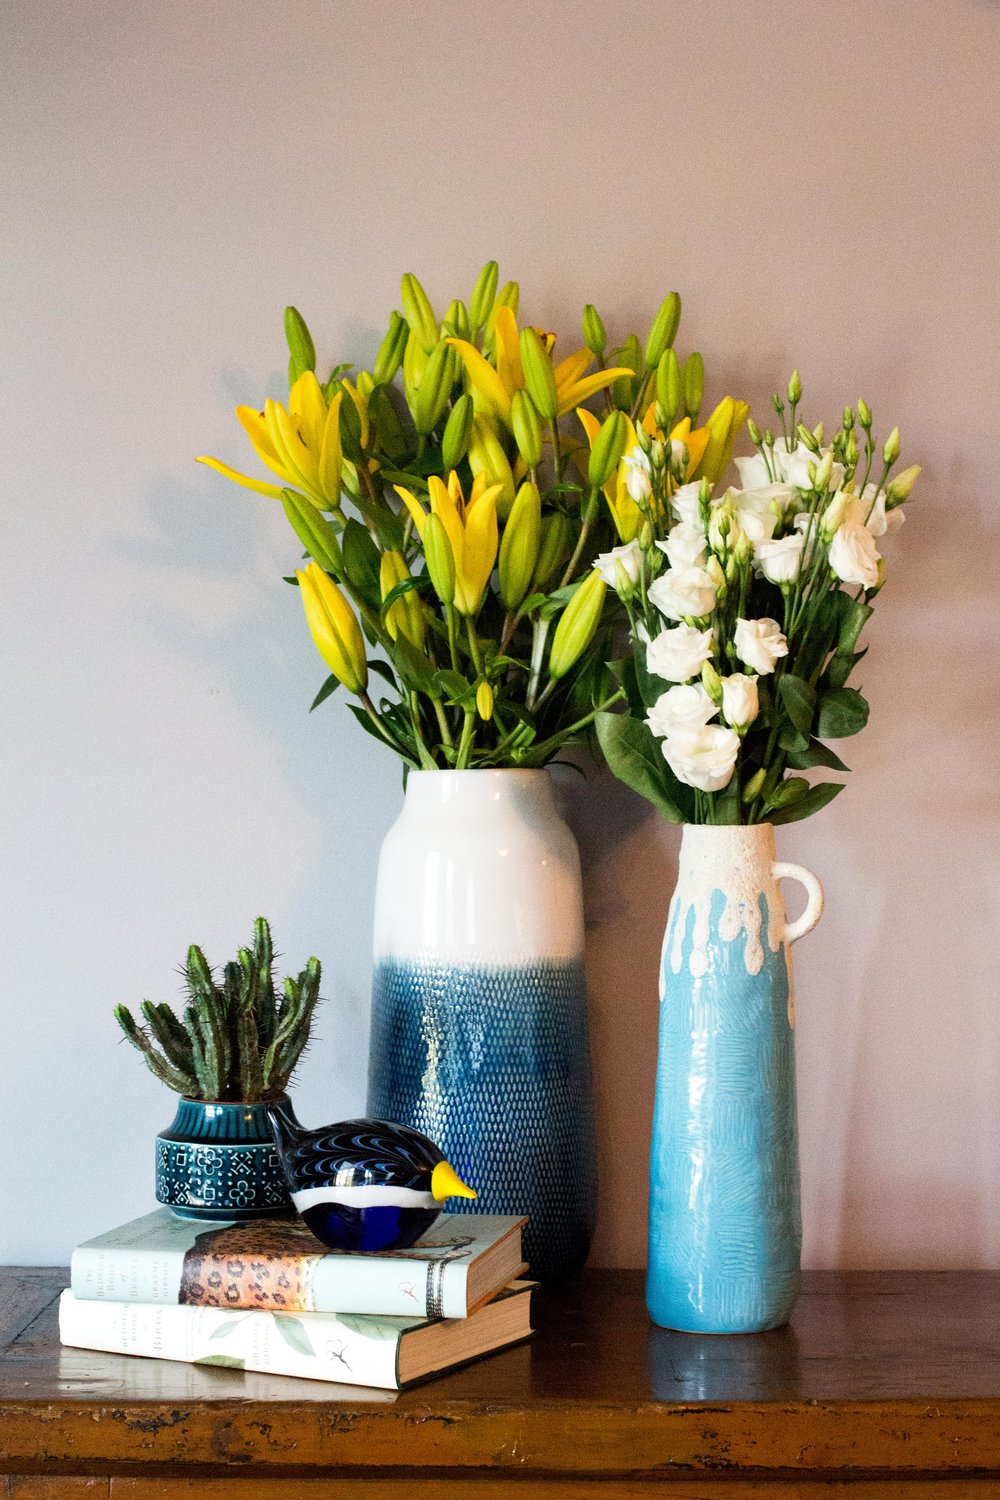 Modern-vases-like the Elmer vase from-Habitat-mix-well-with-vintage-ceramics---Interior-Design-by-Phoebe-Oldrey-